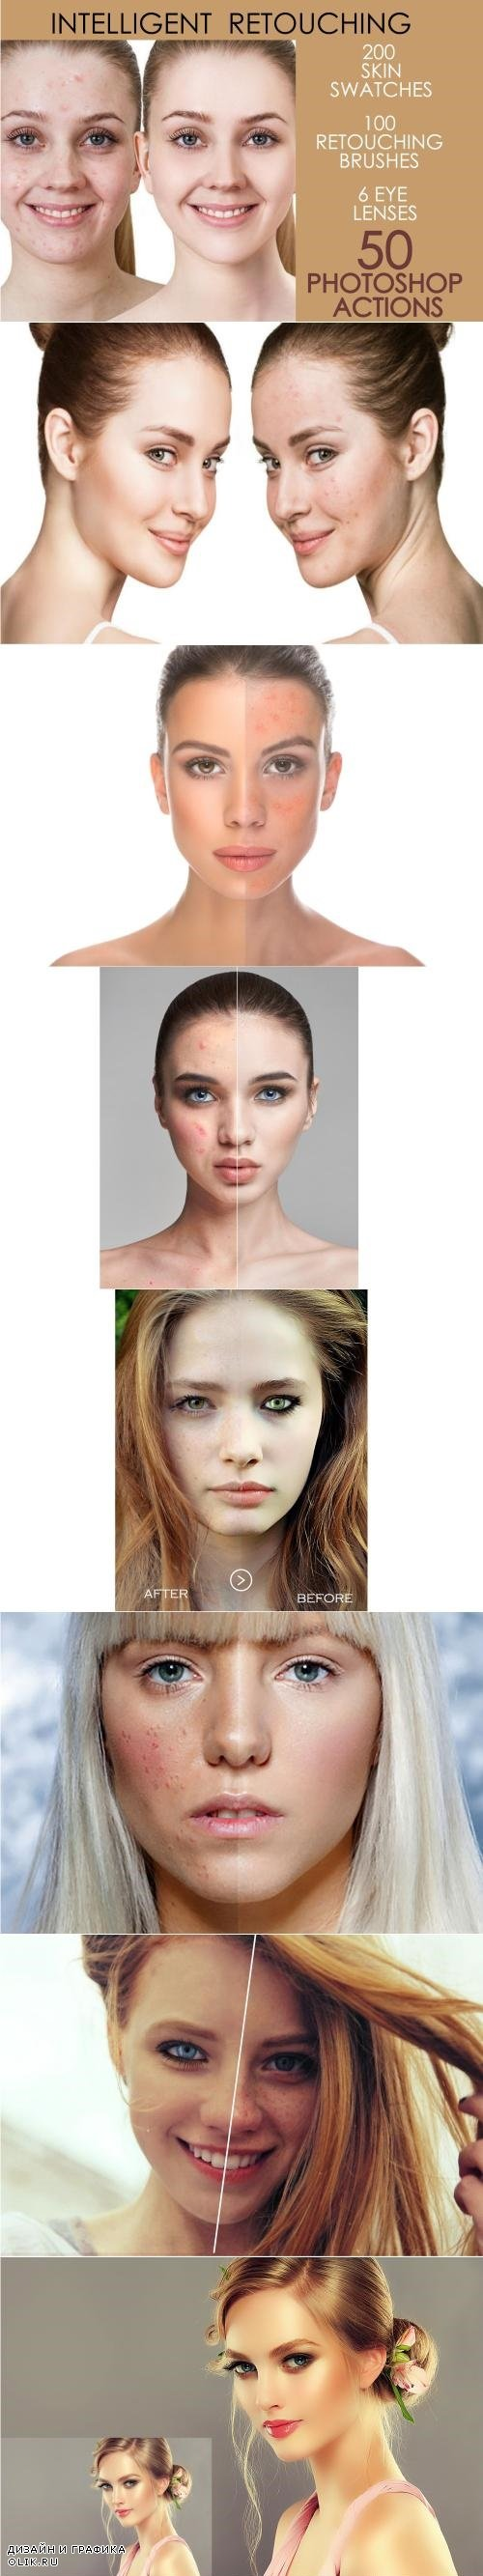 50 Photoshop Actions Retouching Skin - 4167869